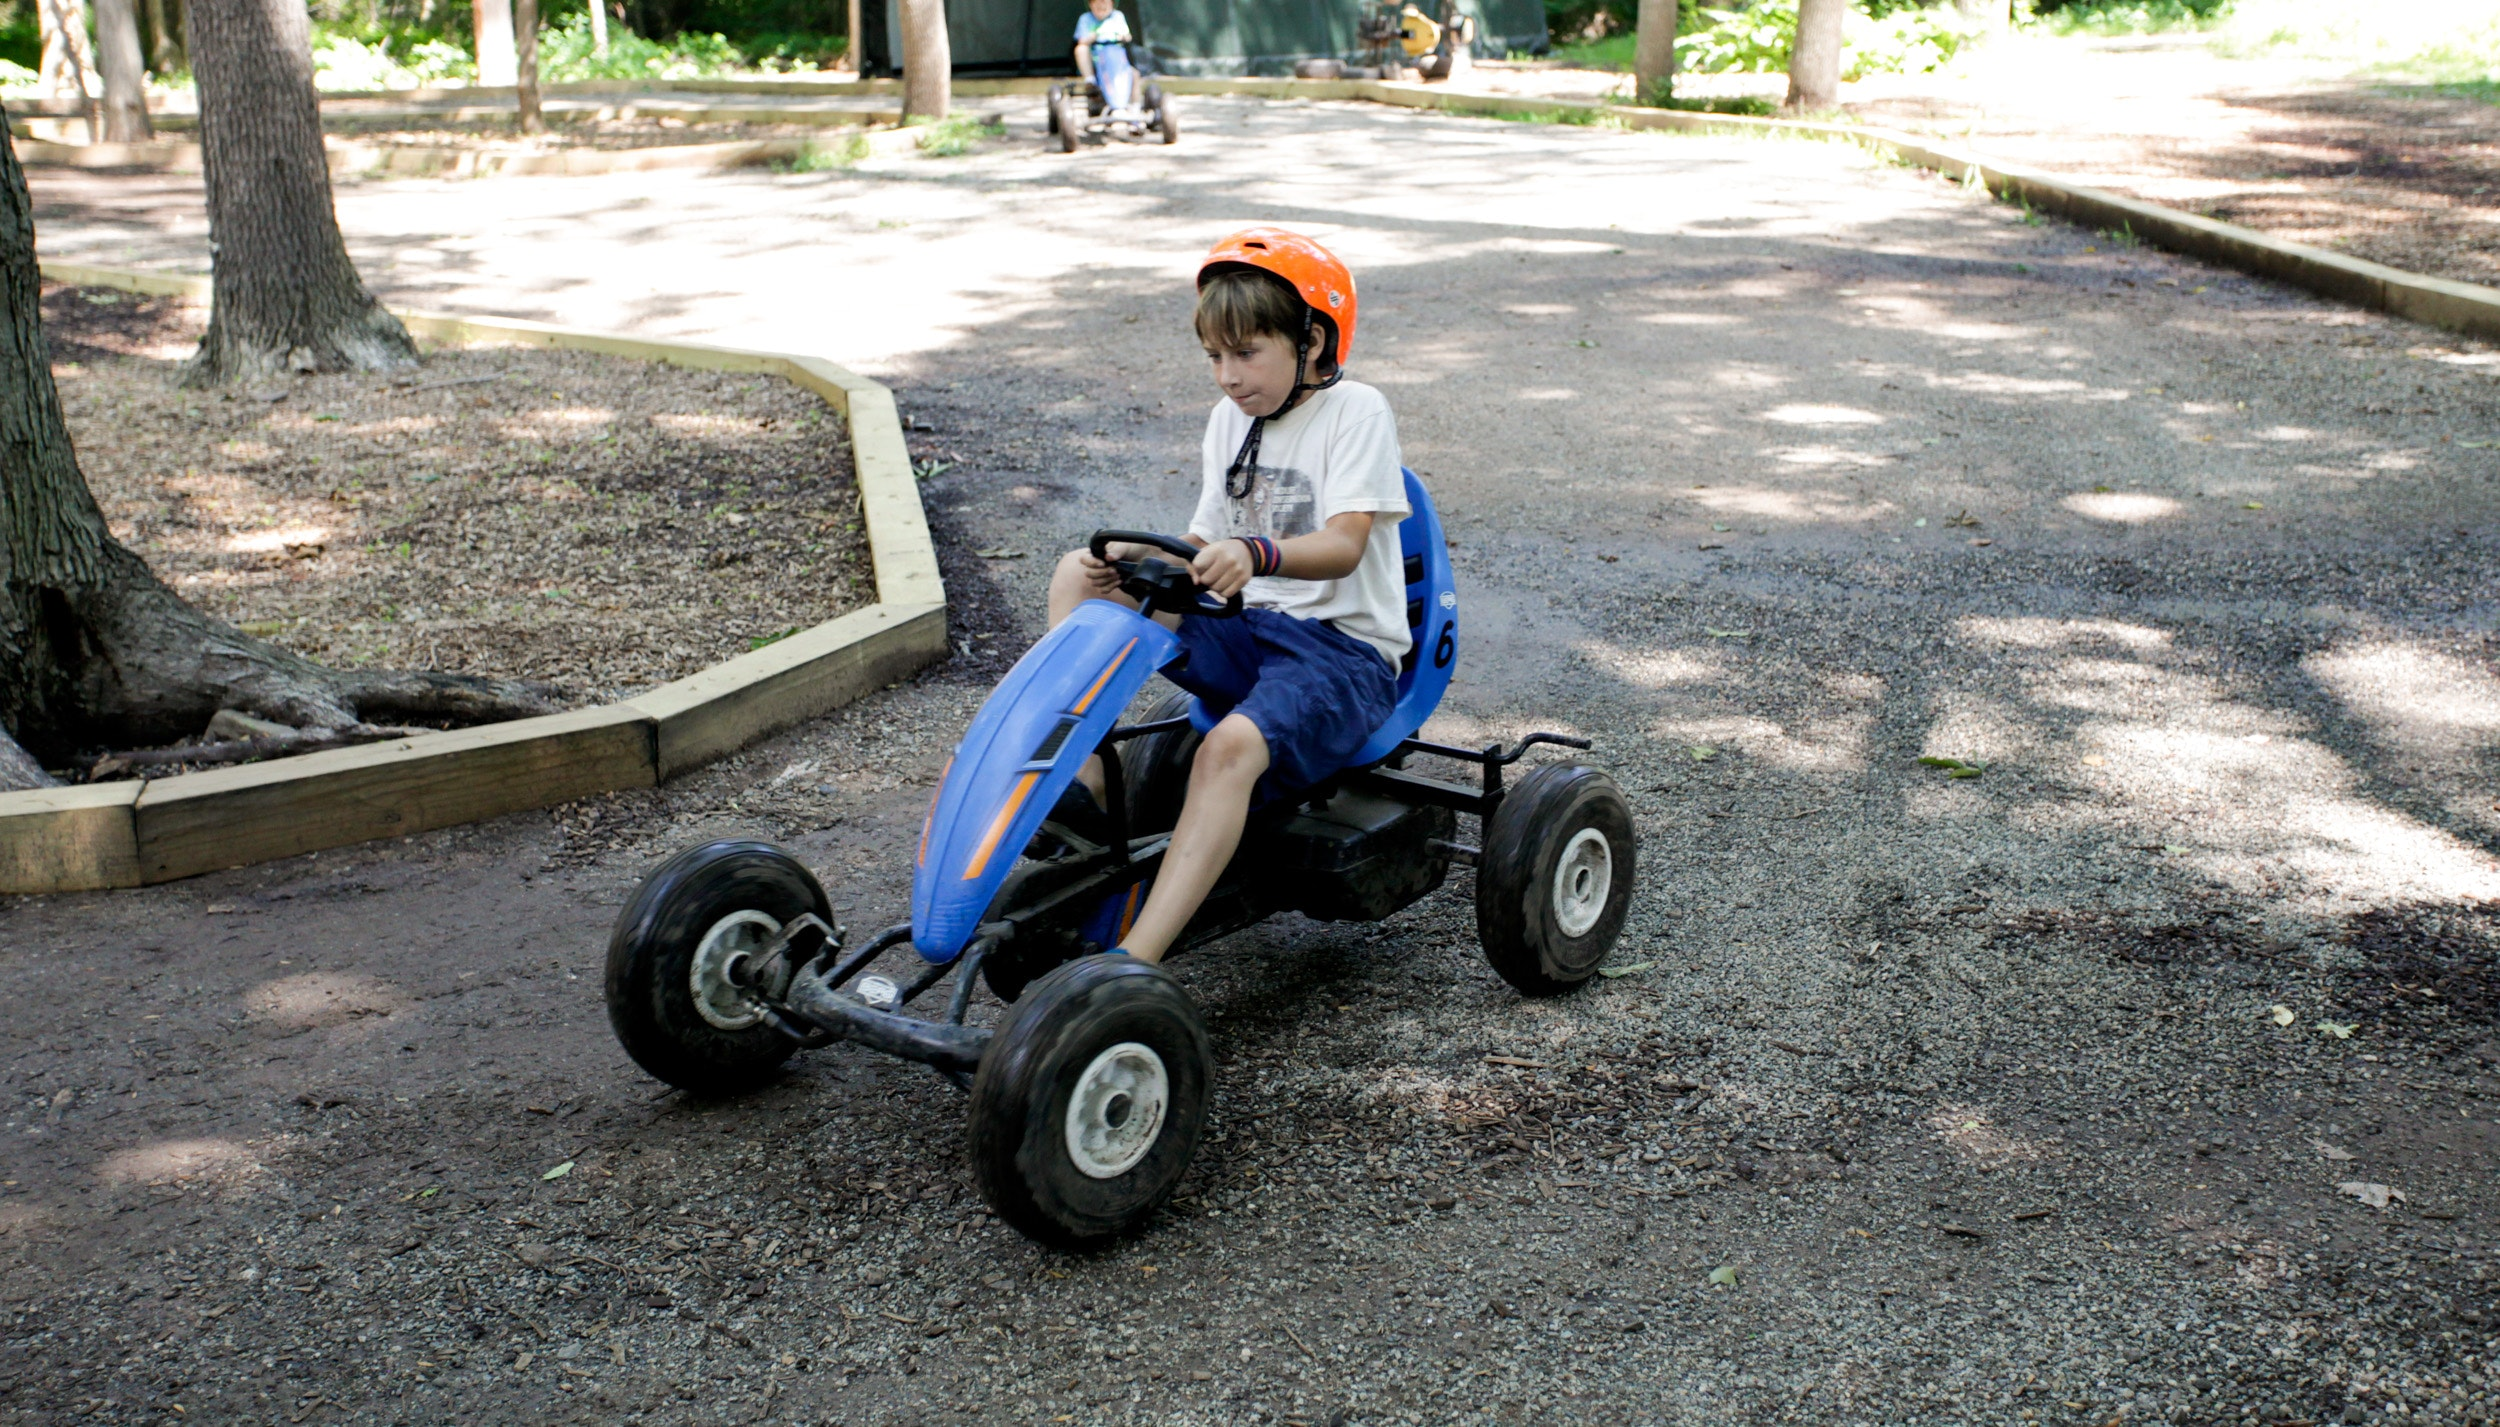 Deerkill day camp pedal carts.jpg?ixlib=rails 2.1